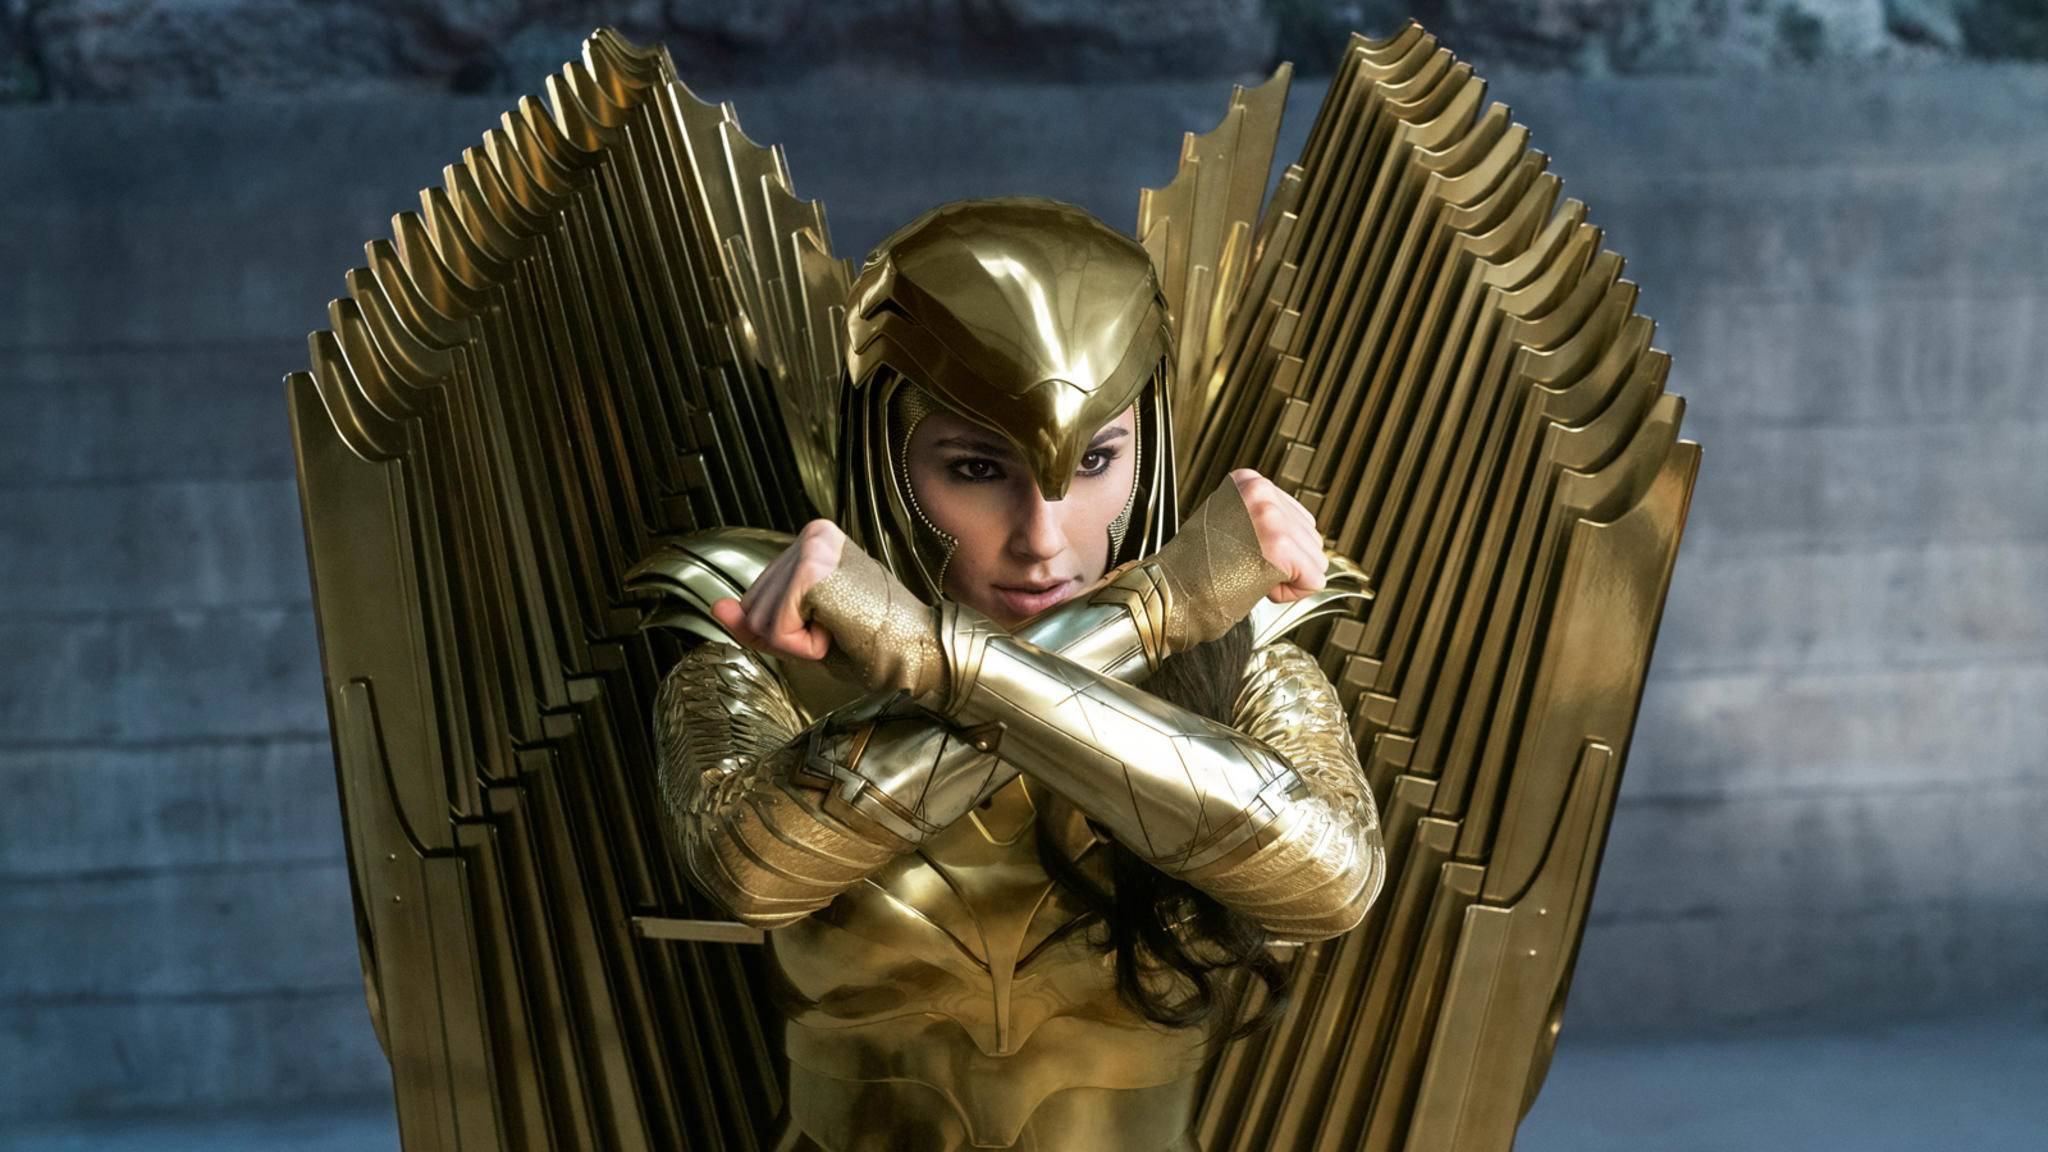 Wonder Woman 1984 Gal Gadot Golden Eagle Rüstung